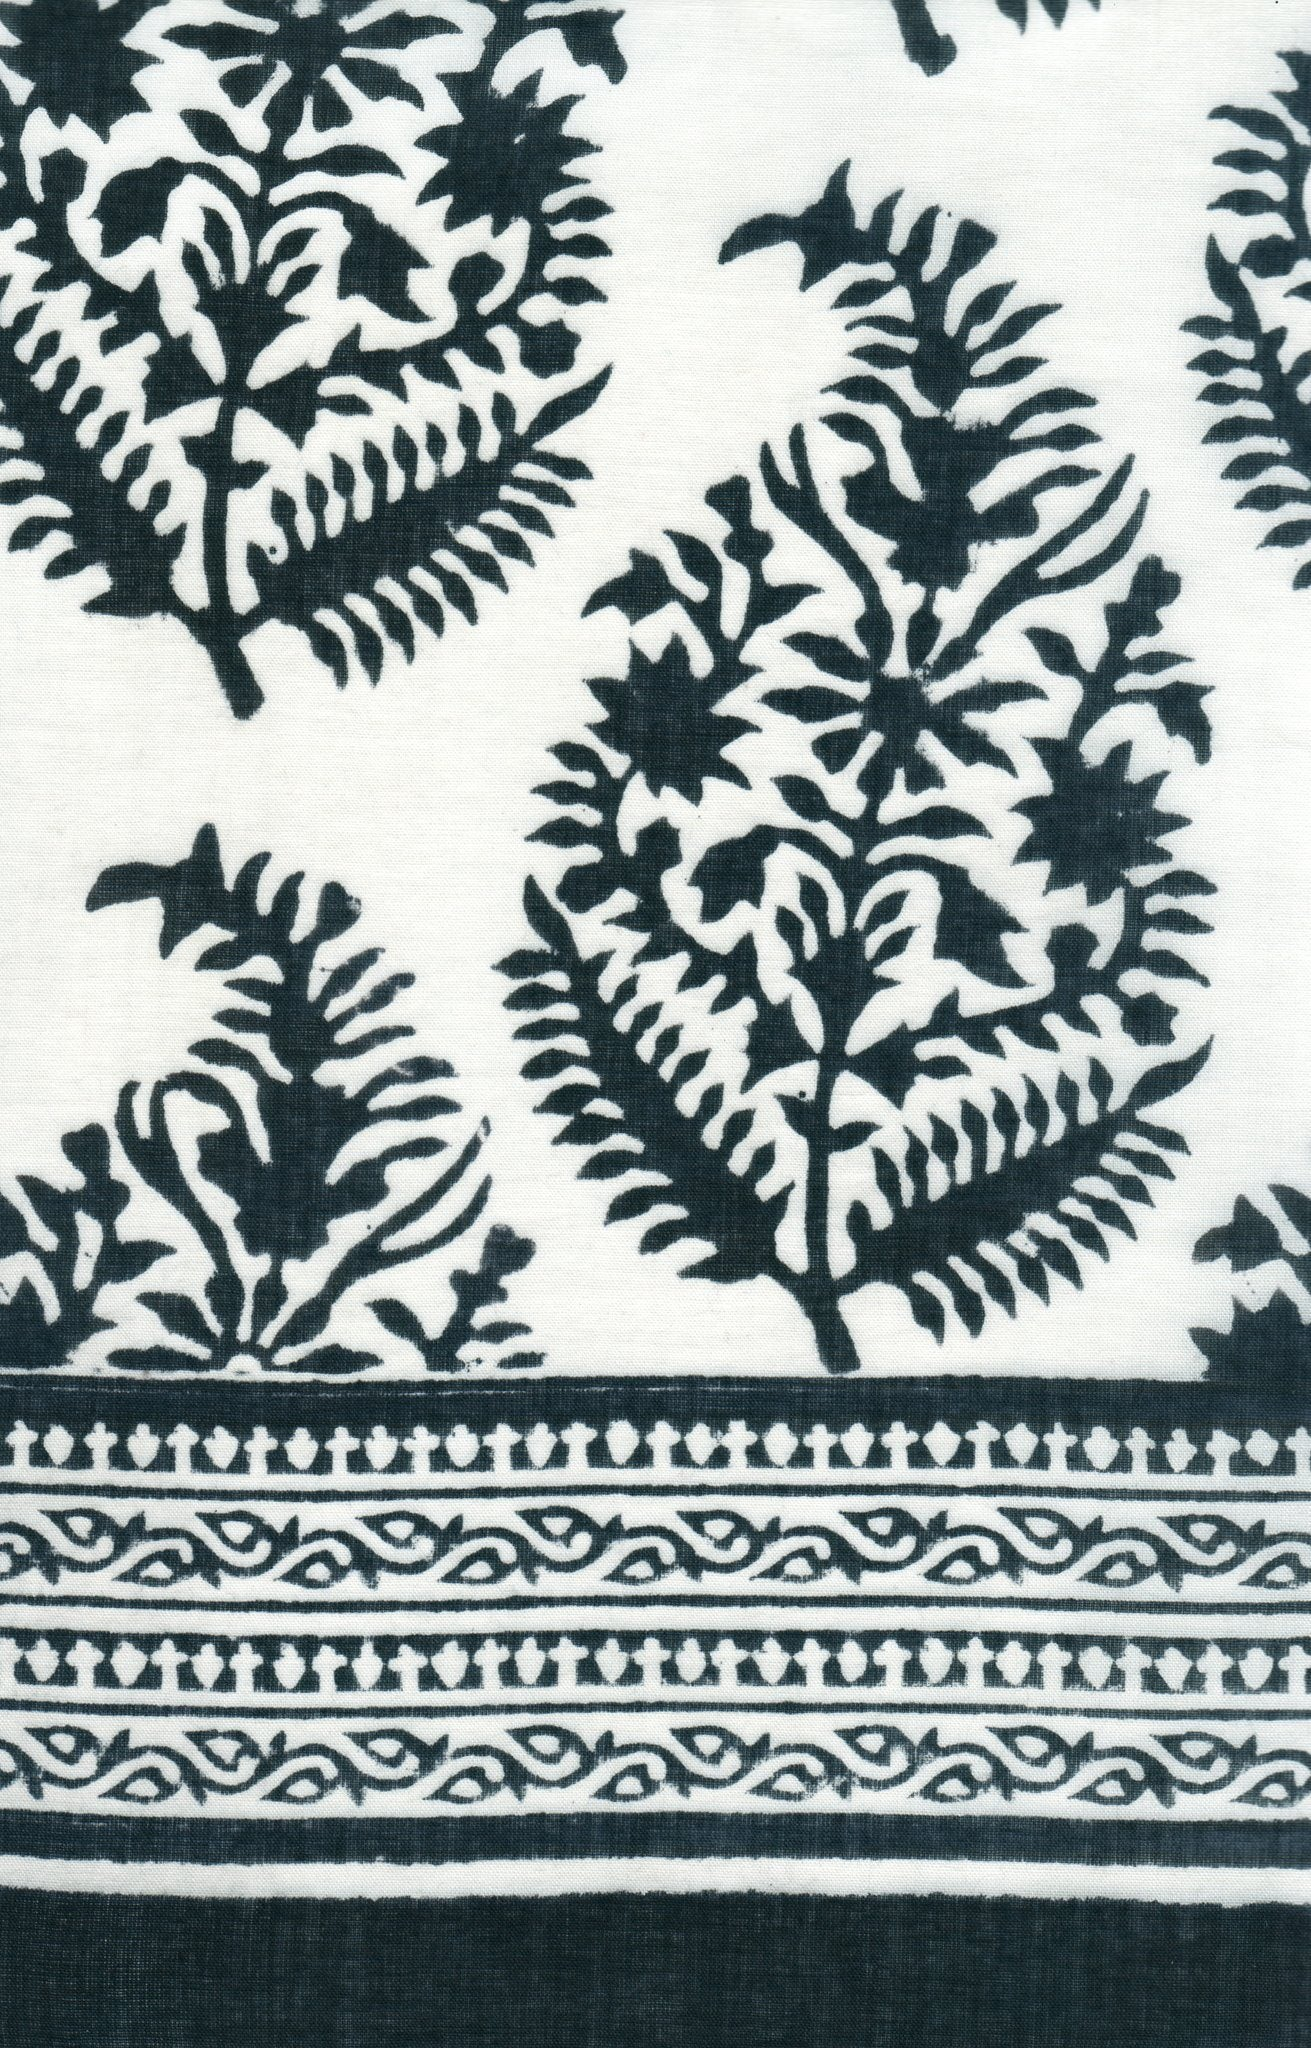 Block Printed Cravats - Samson Historical